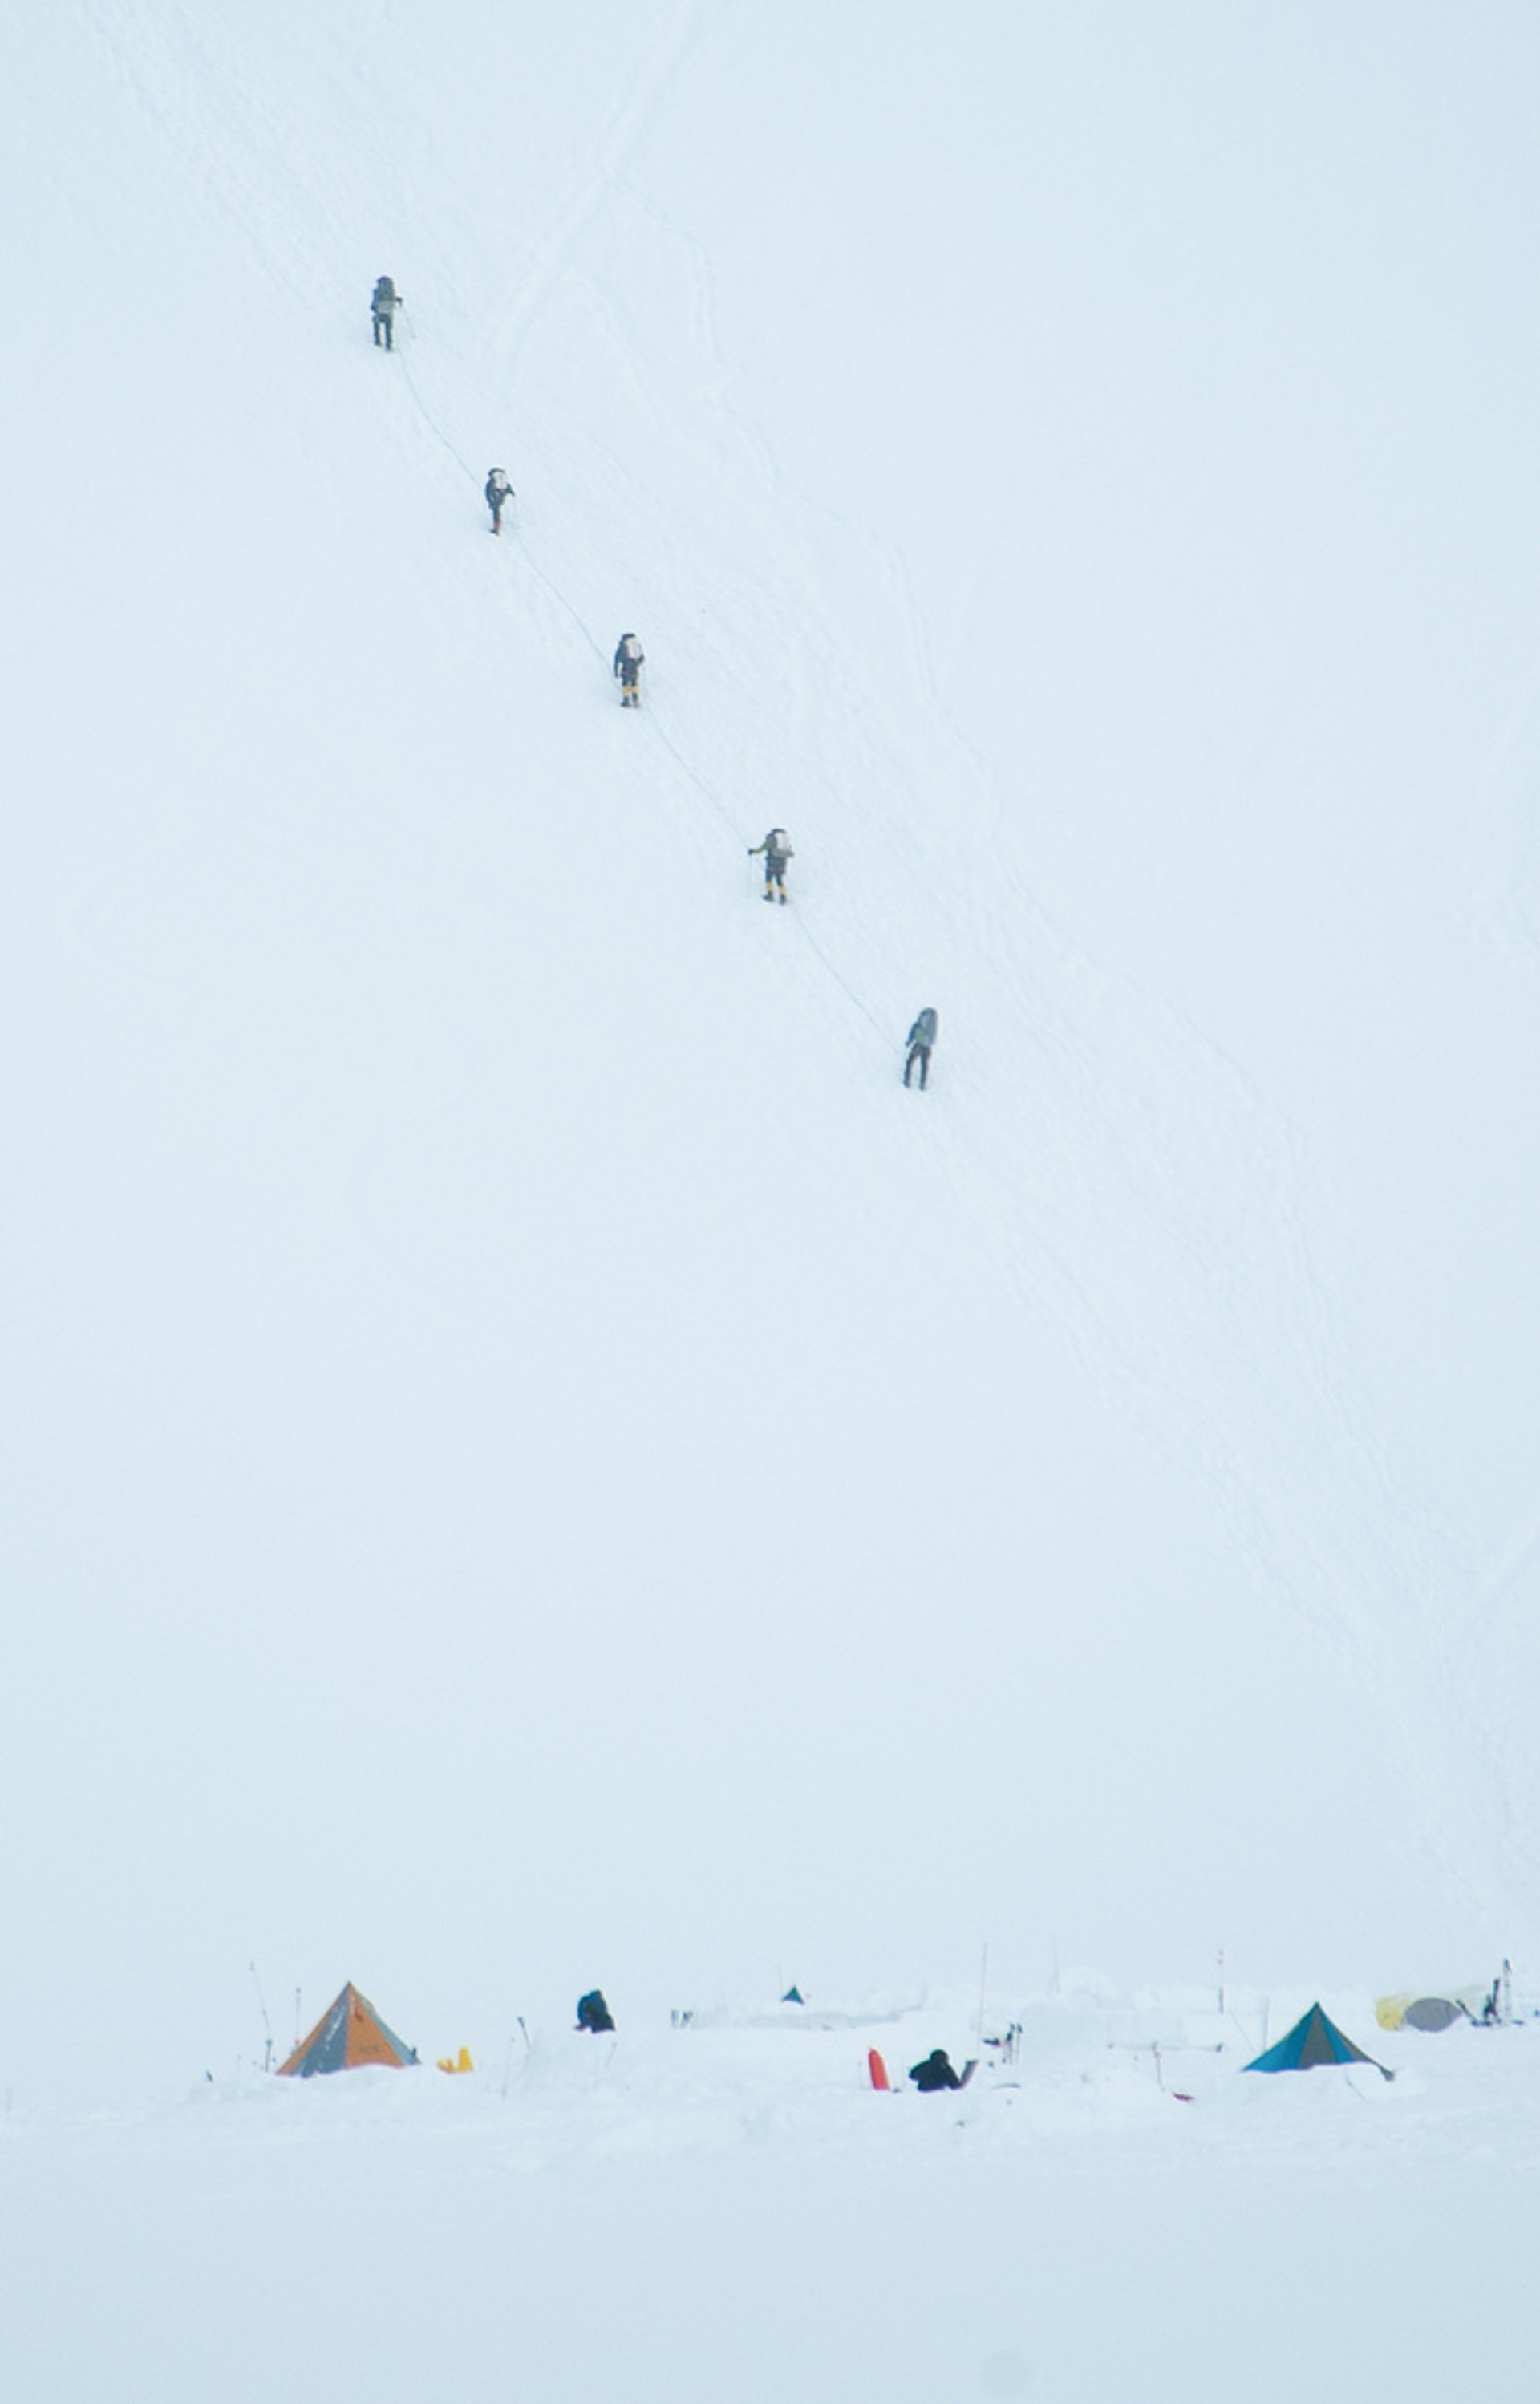 Climbers on McKinley 2019